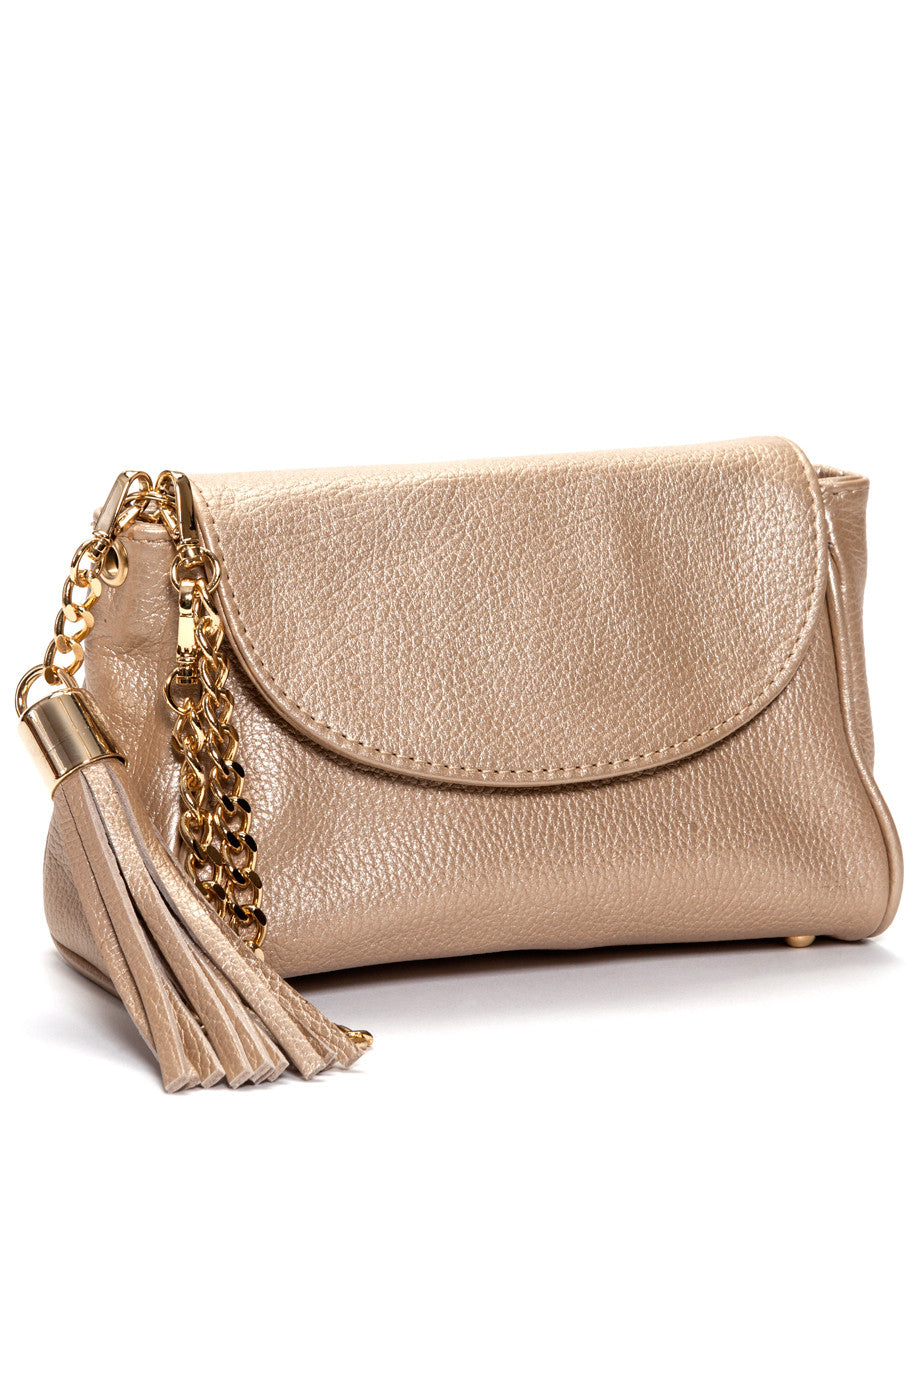 matte gold italian leather handmade handbag with tassel and chain wristlet strap